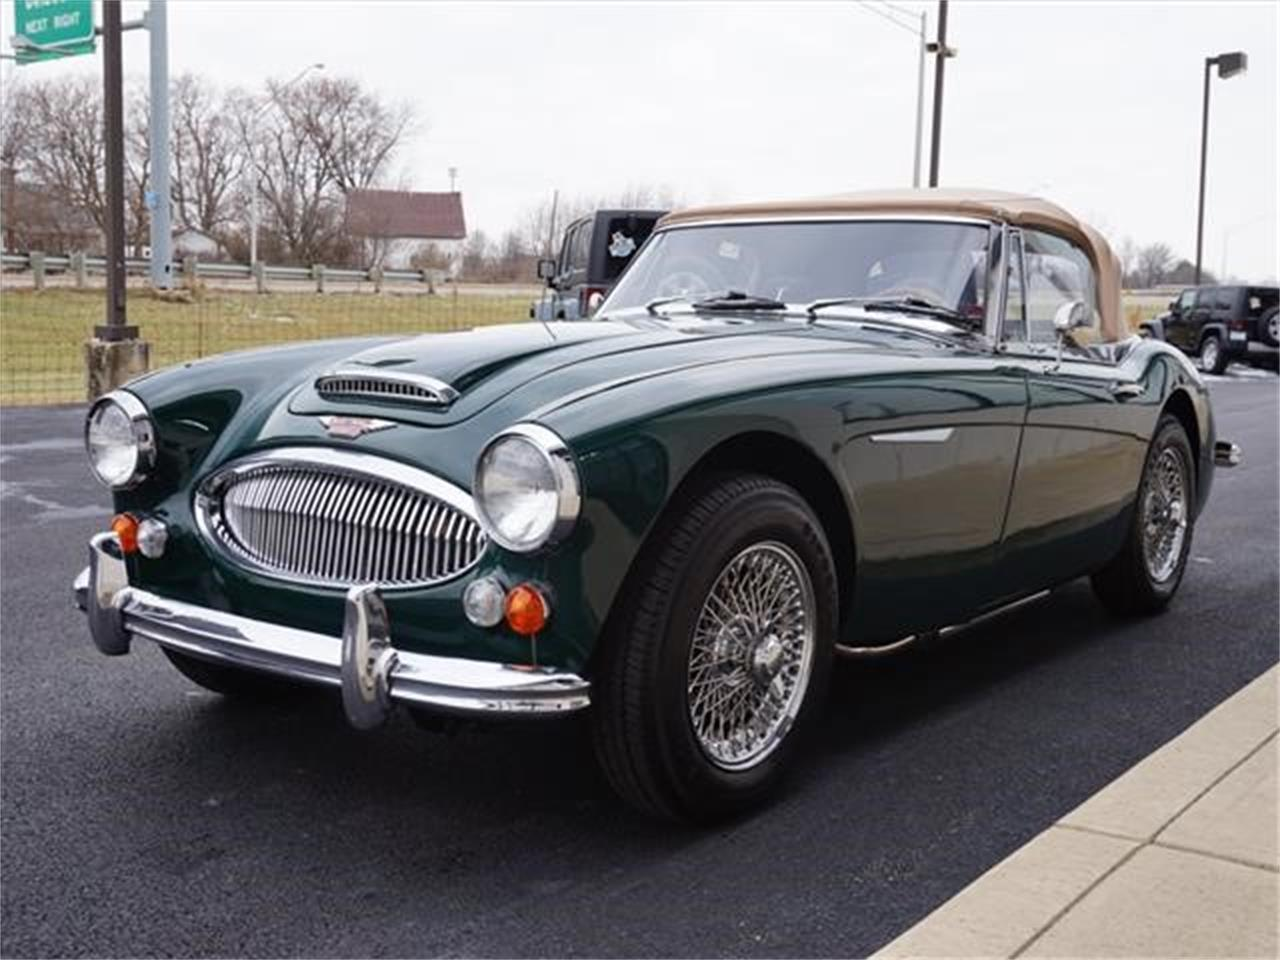 Large Picture of '67 Austin-Healey 3000 Mark III - $59,999.00 Offered by Nelson Automotive, Ltd. - LRXT